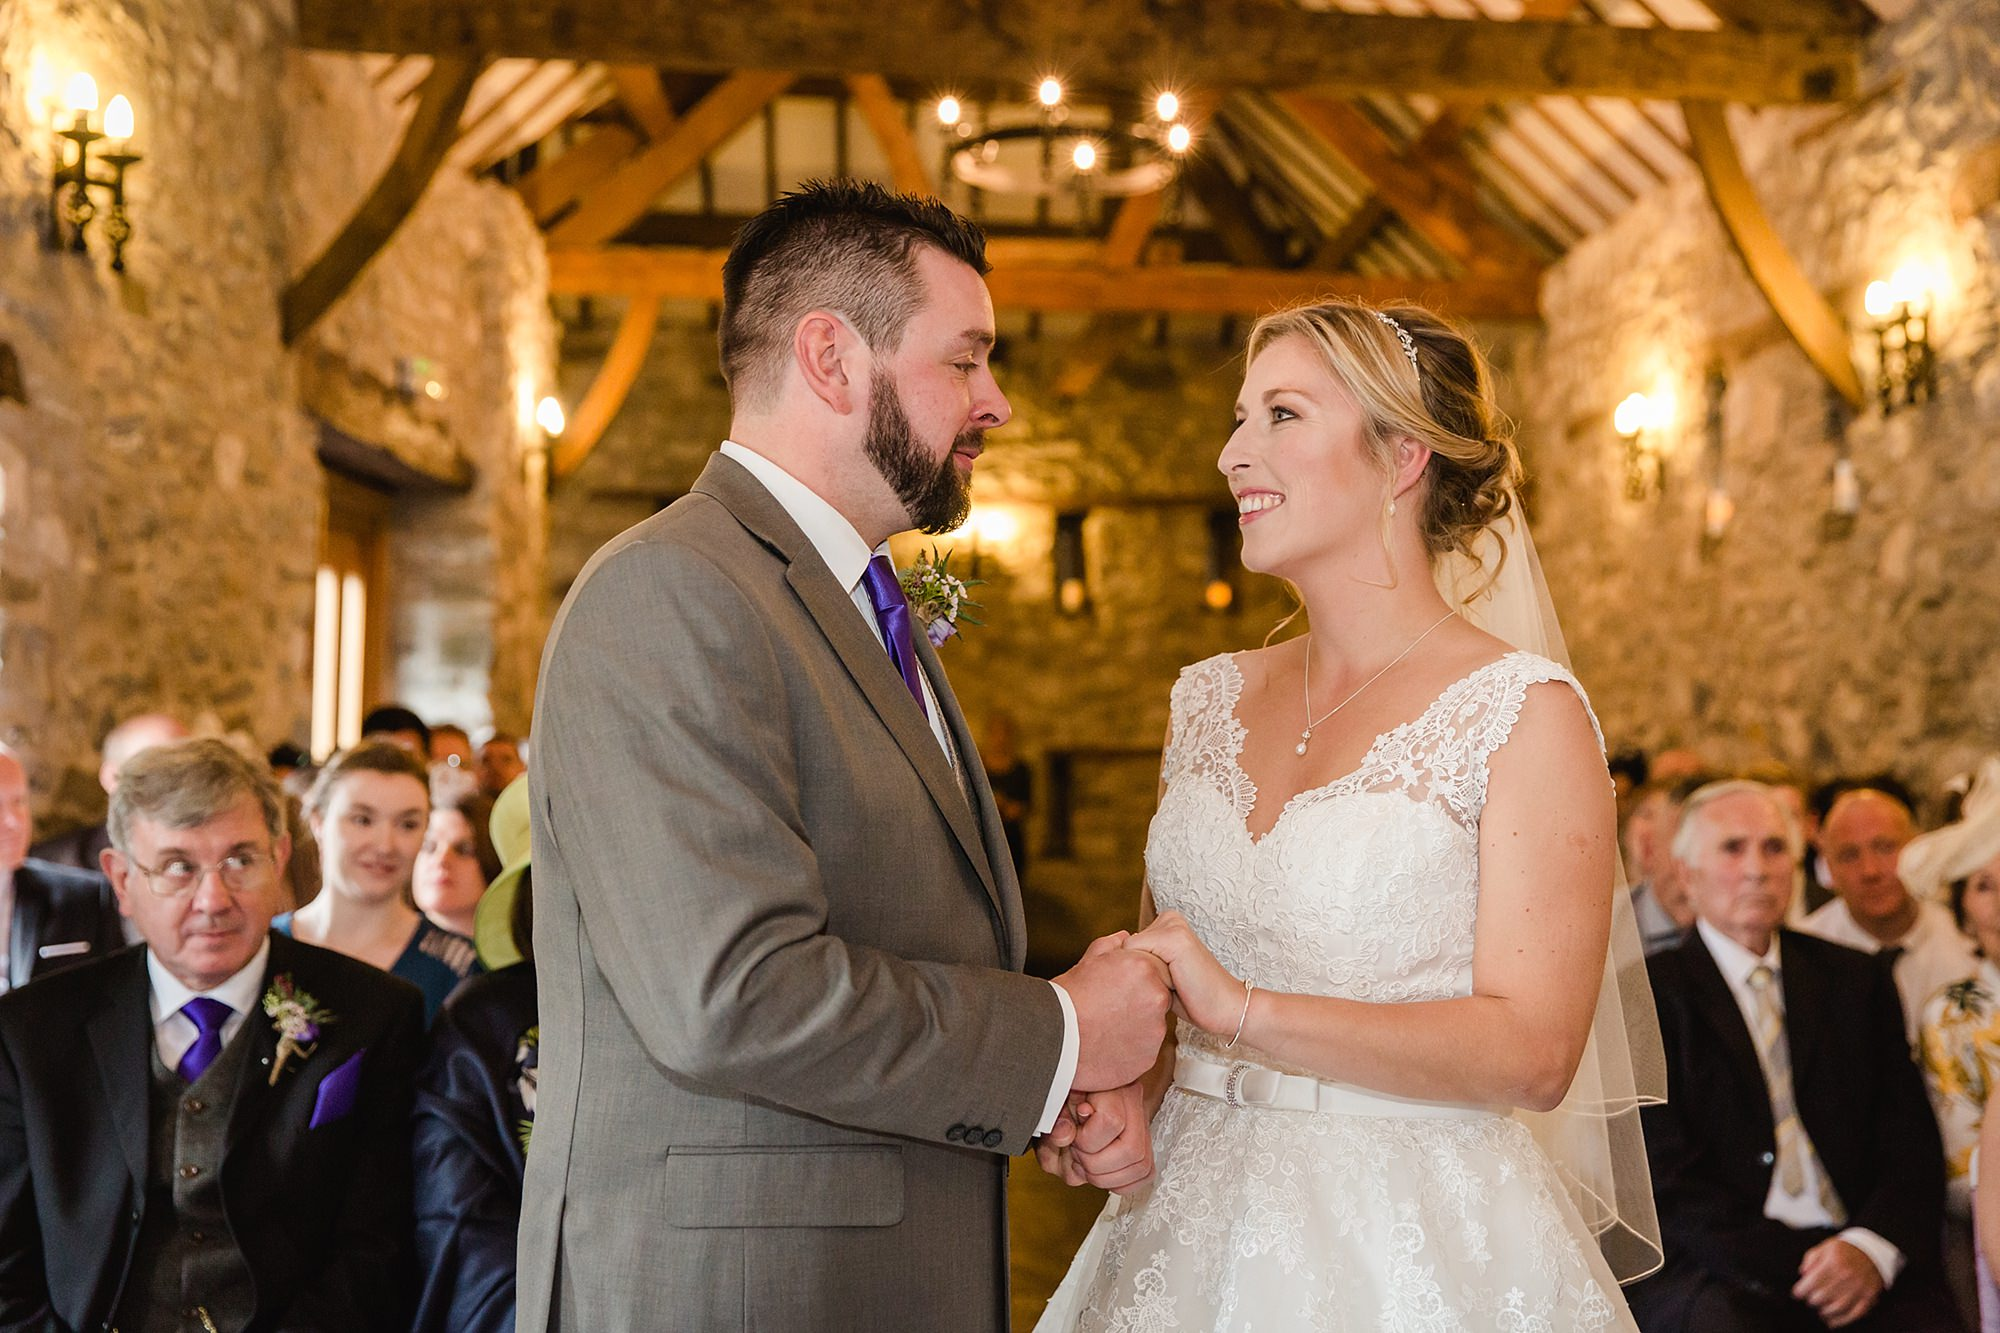 A fun wedding at Plas Isaf portrait of bride and groom during ceremony